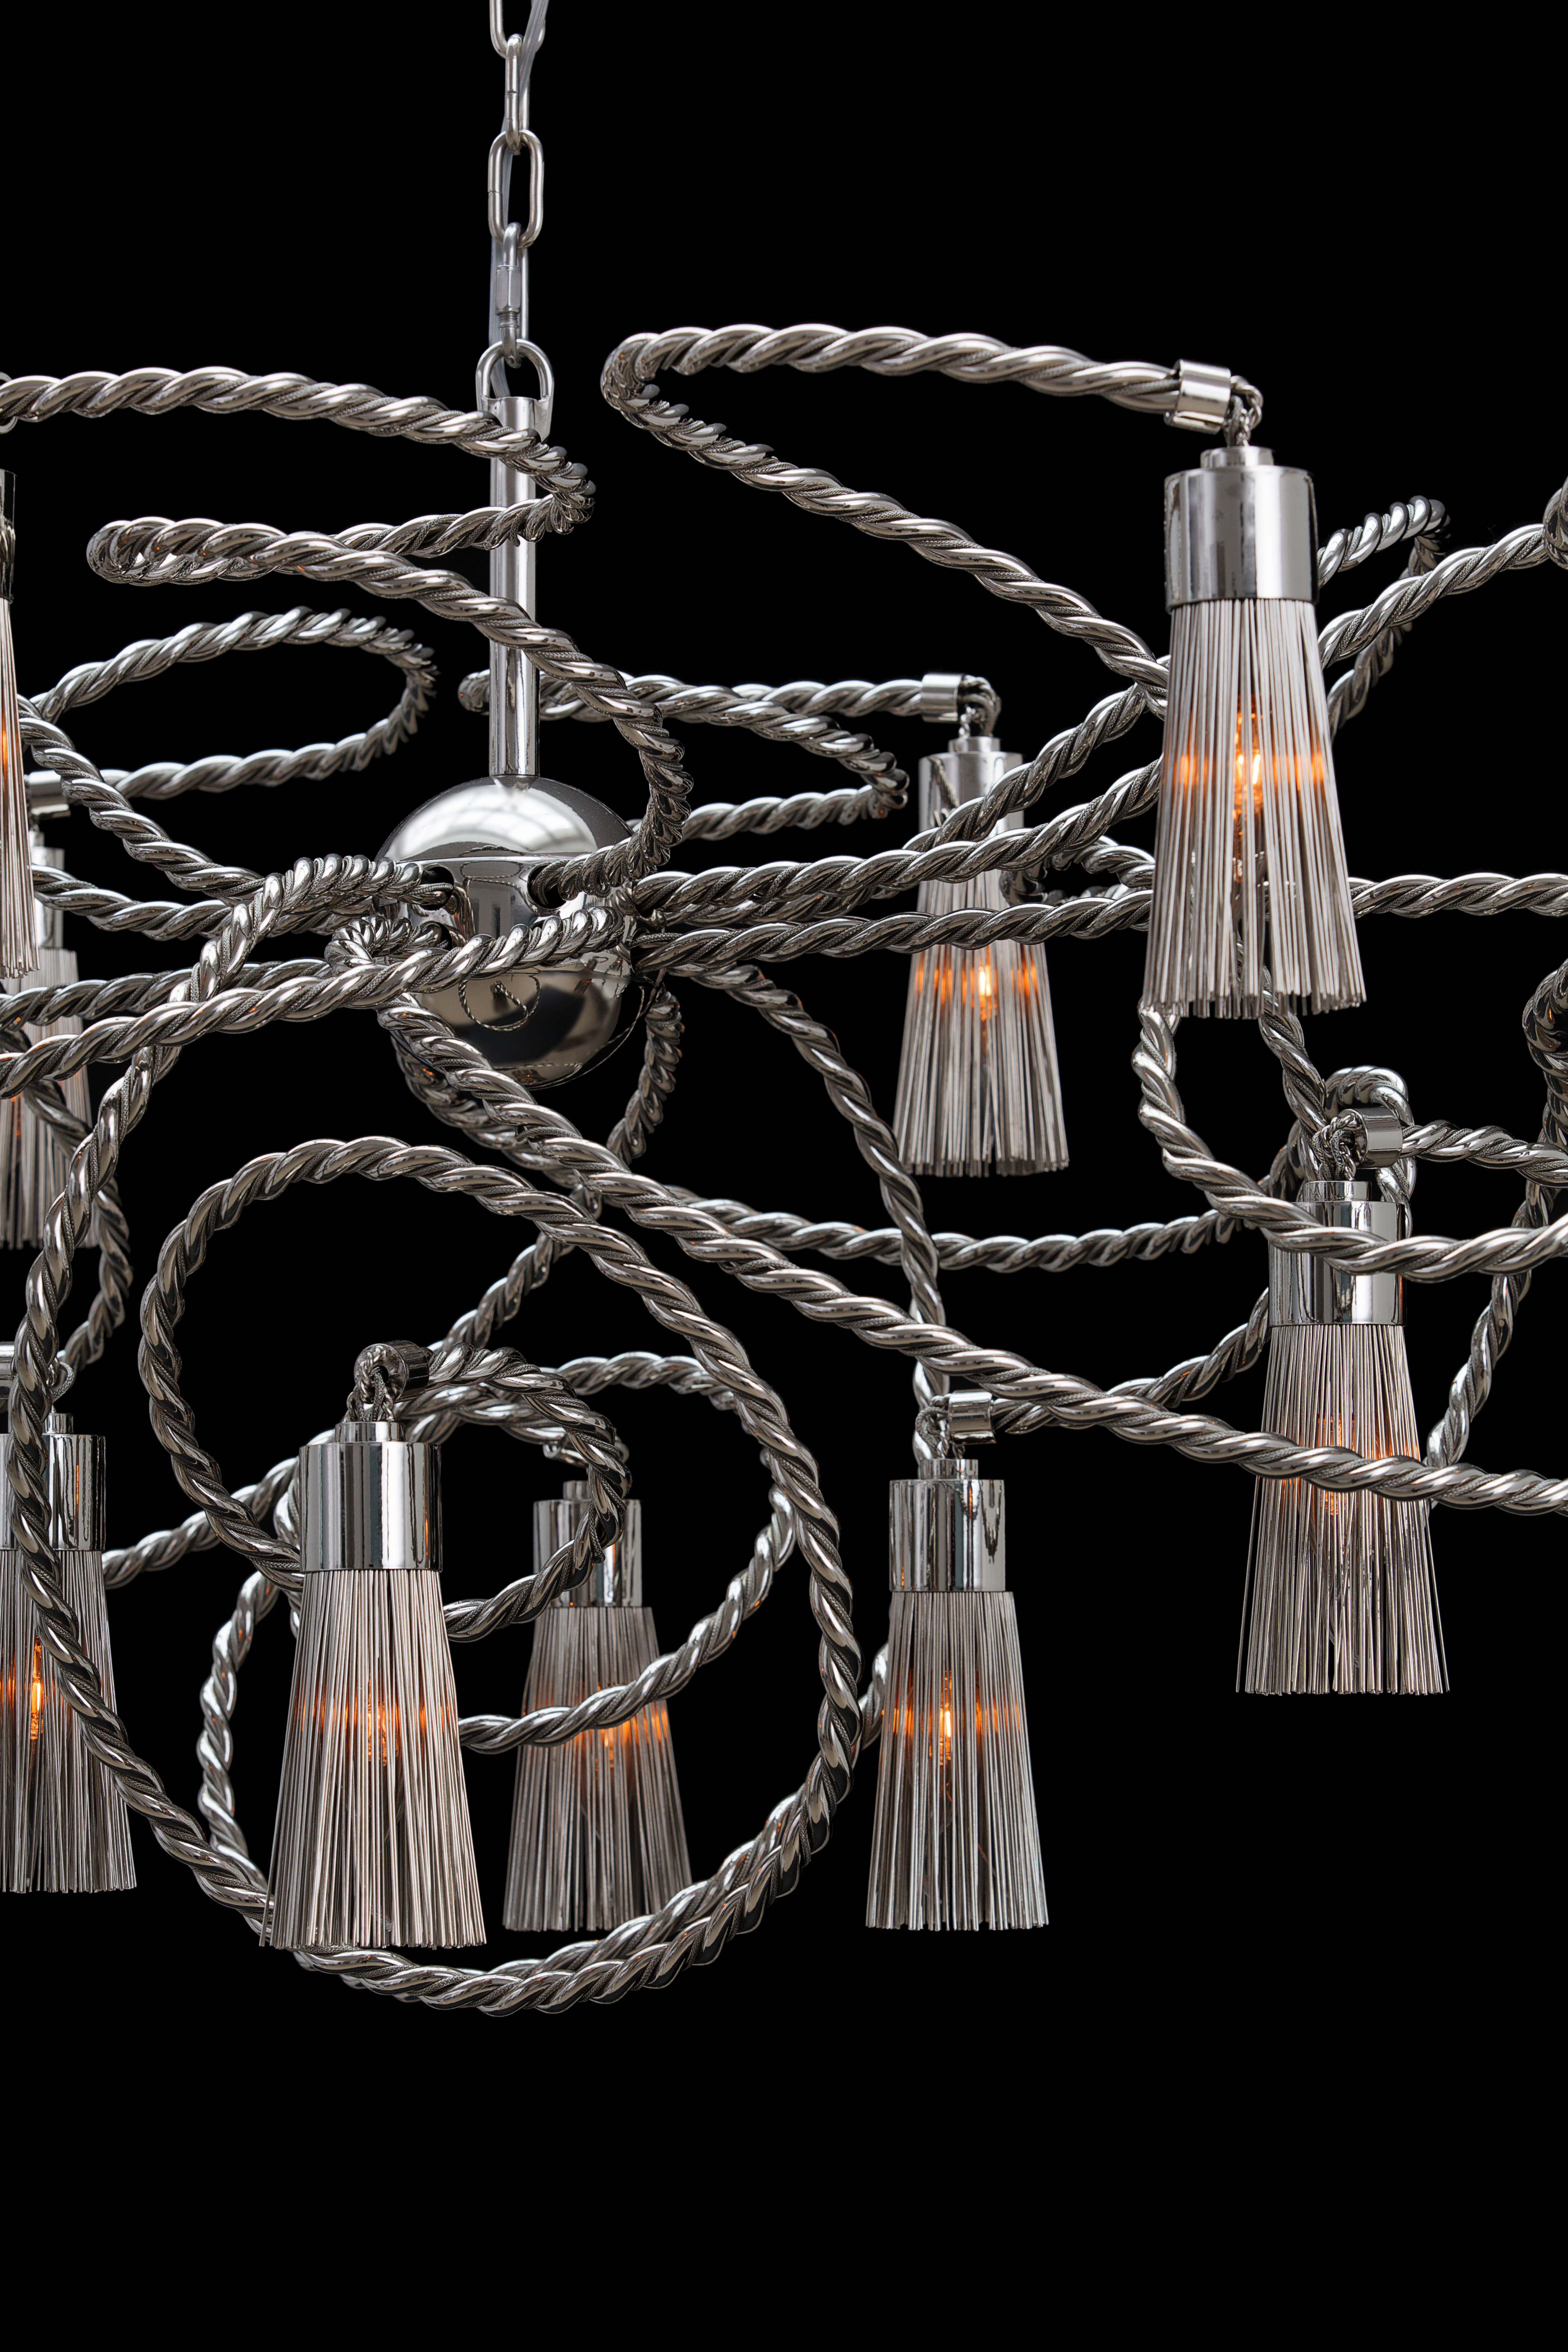 Sultans of swing chandelier oval by brand van egmond stylepark sultans of swing chandelier oval aloadofball Image collections